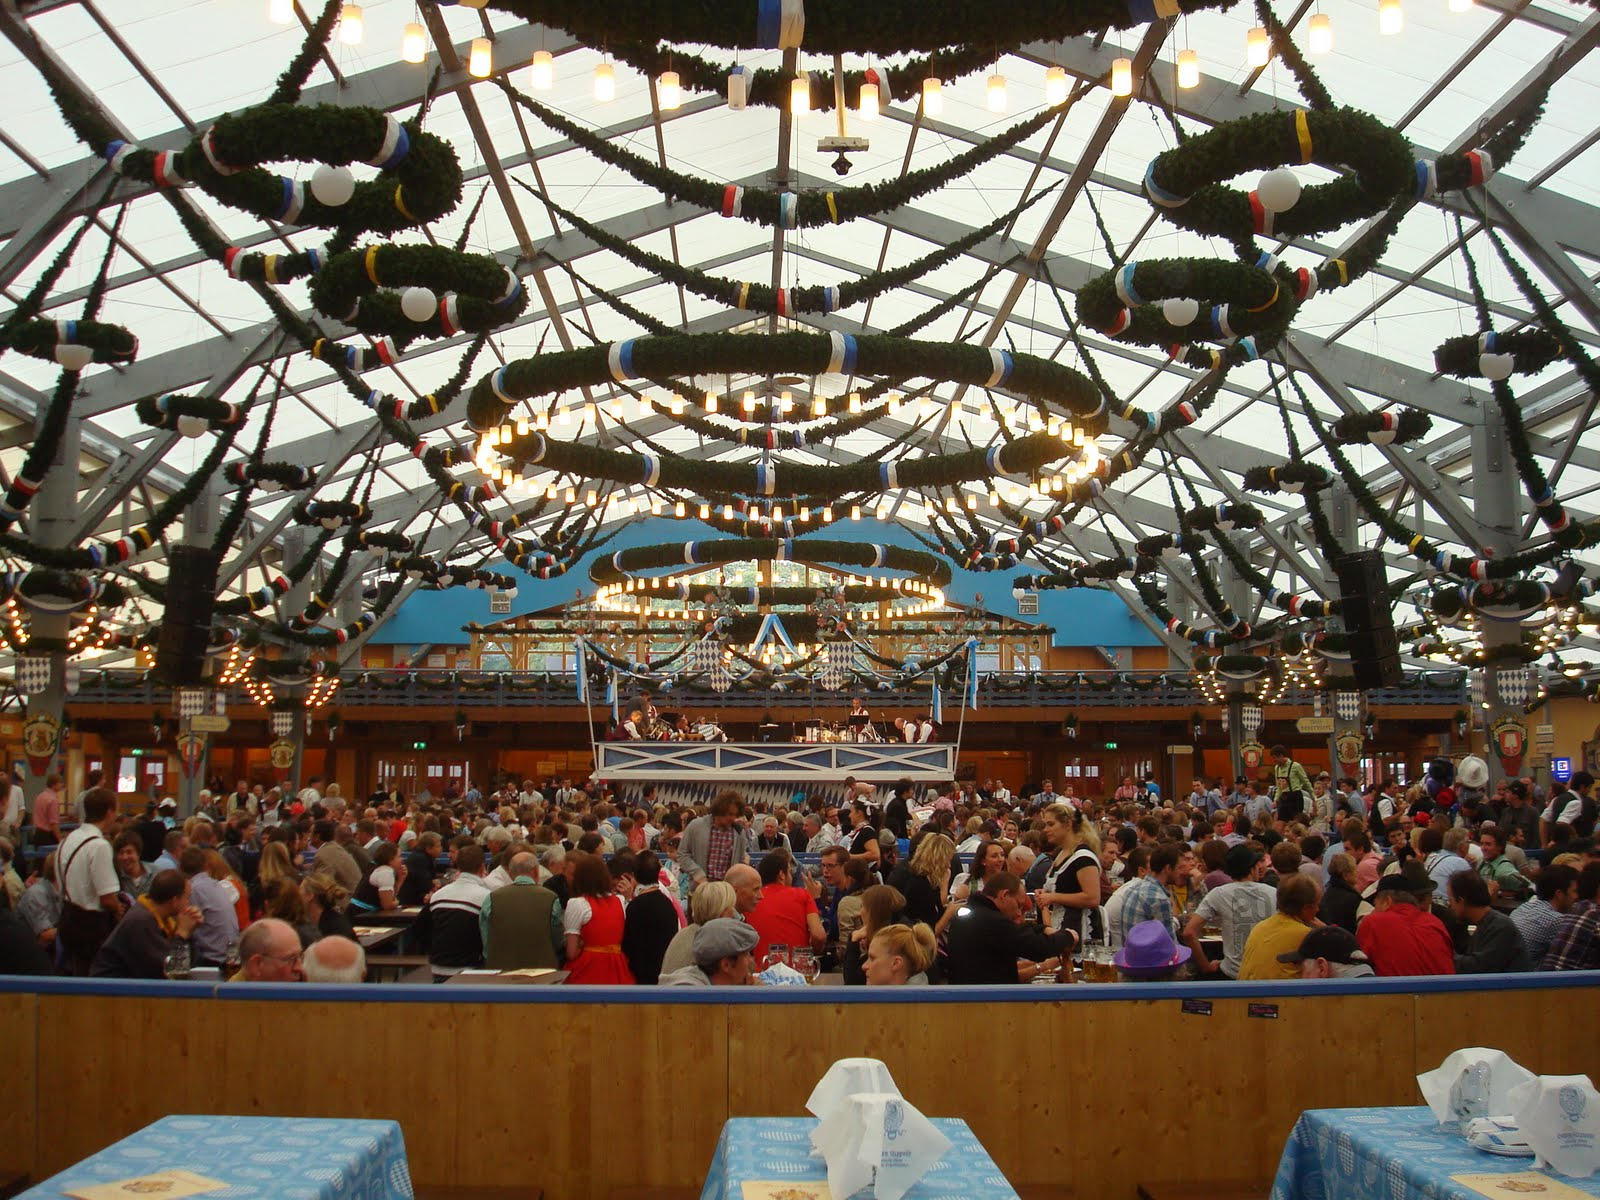 The Pschorr - Bräurosl tent has been around for over a hundred years and run by the same Heide family seven generations all that time. & ROWDY IN GERMANY: Oktoberfest Tents